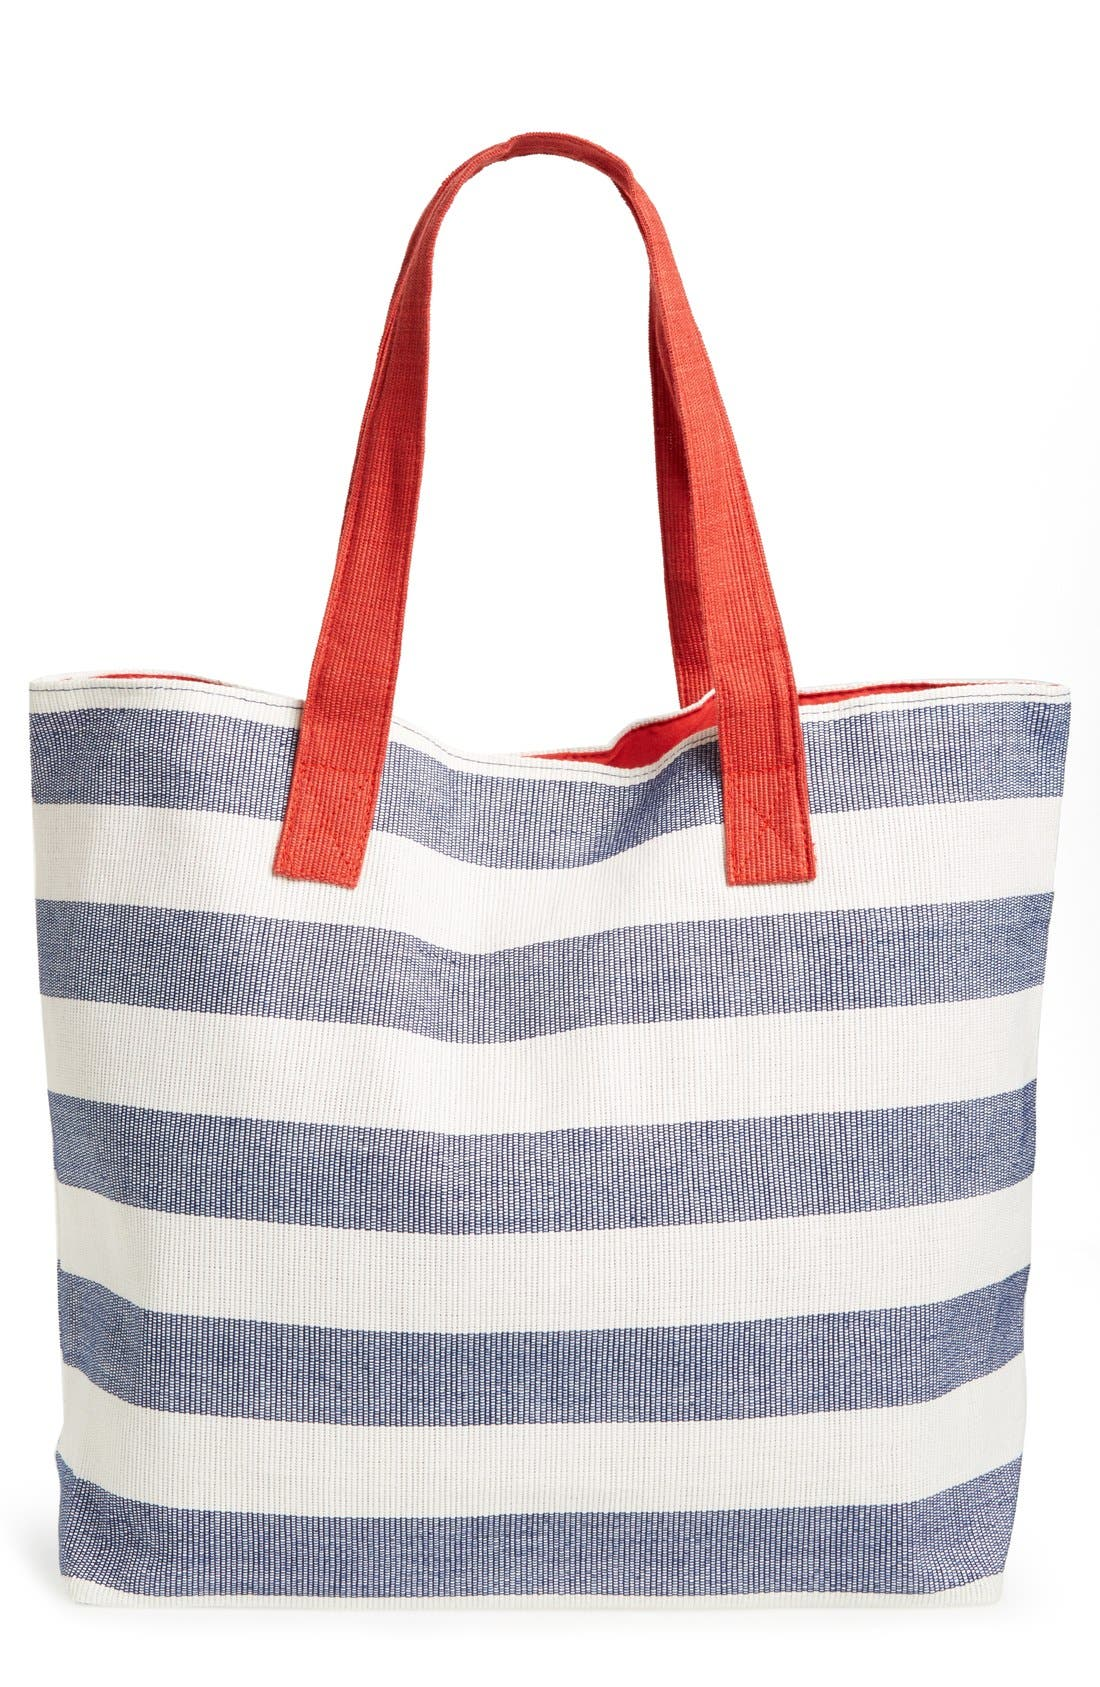 Alternate Image 1 Selected - BP. Stripe Canvas Tote